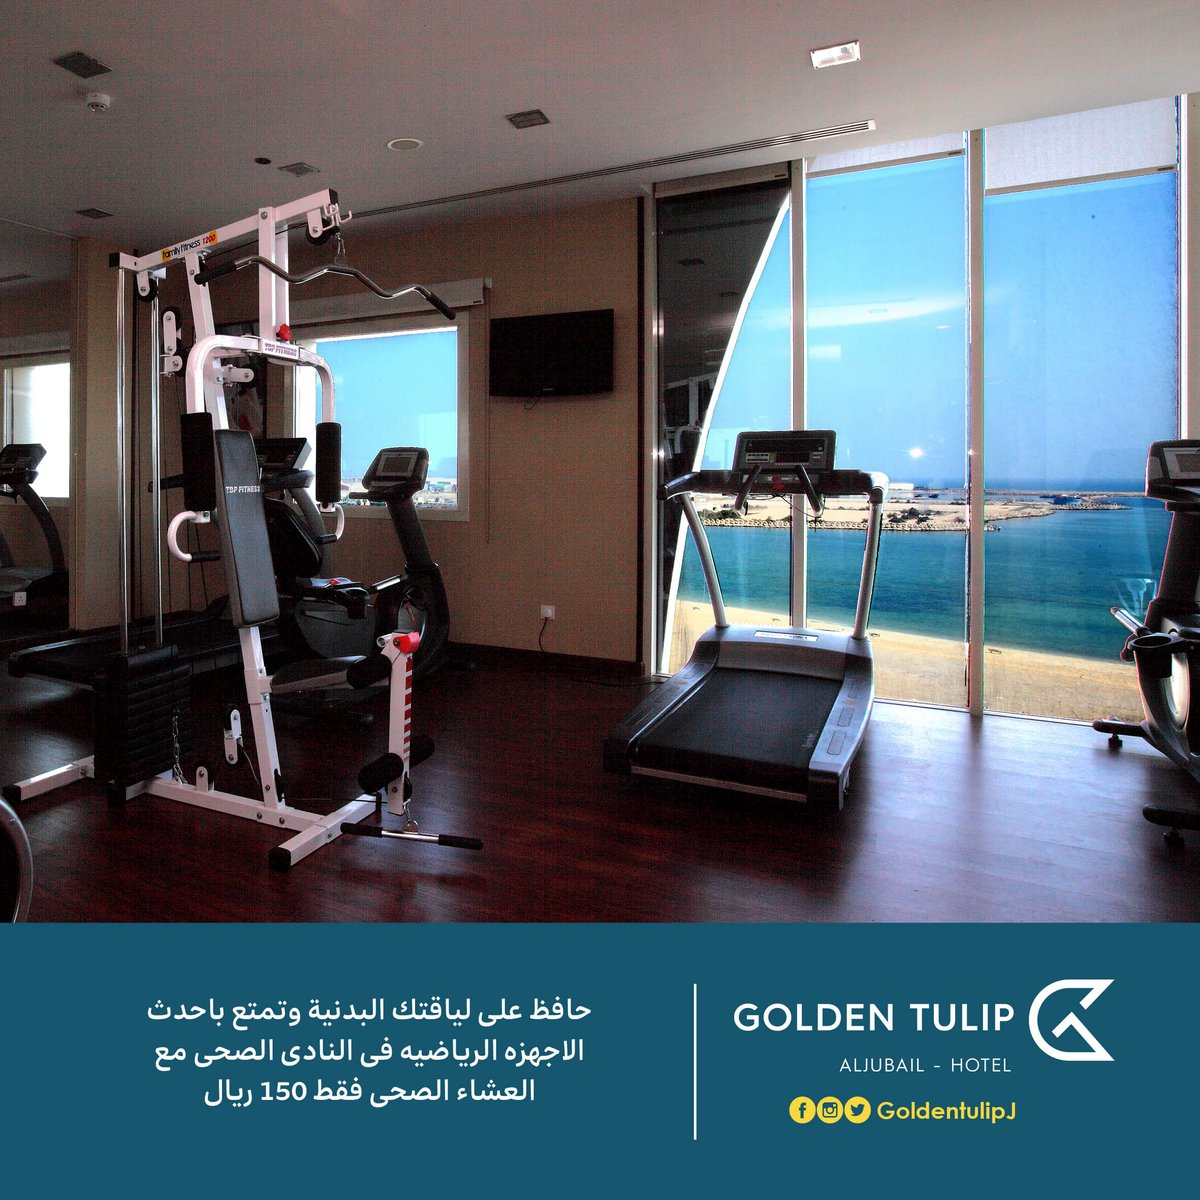 Stay fit and enjoy the latest sports  equipment at Jim Golden Tulip Al Jubail, where the charming sea views with a healthy dinner only SR 150  #فنادق_الشرقية #الجبيل #الجبيل_الان  #الجبيل_الصناعية #فنادق_الجبيل #شركات #شركات_الجبيل https://t.co/AbteDKHbwo